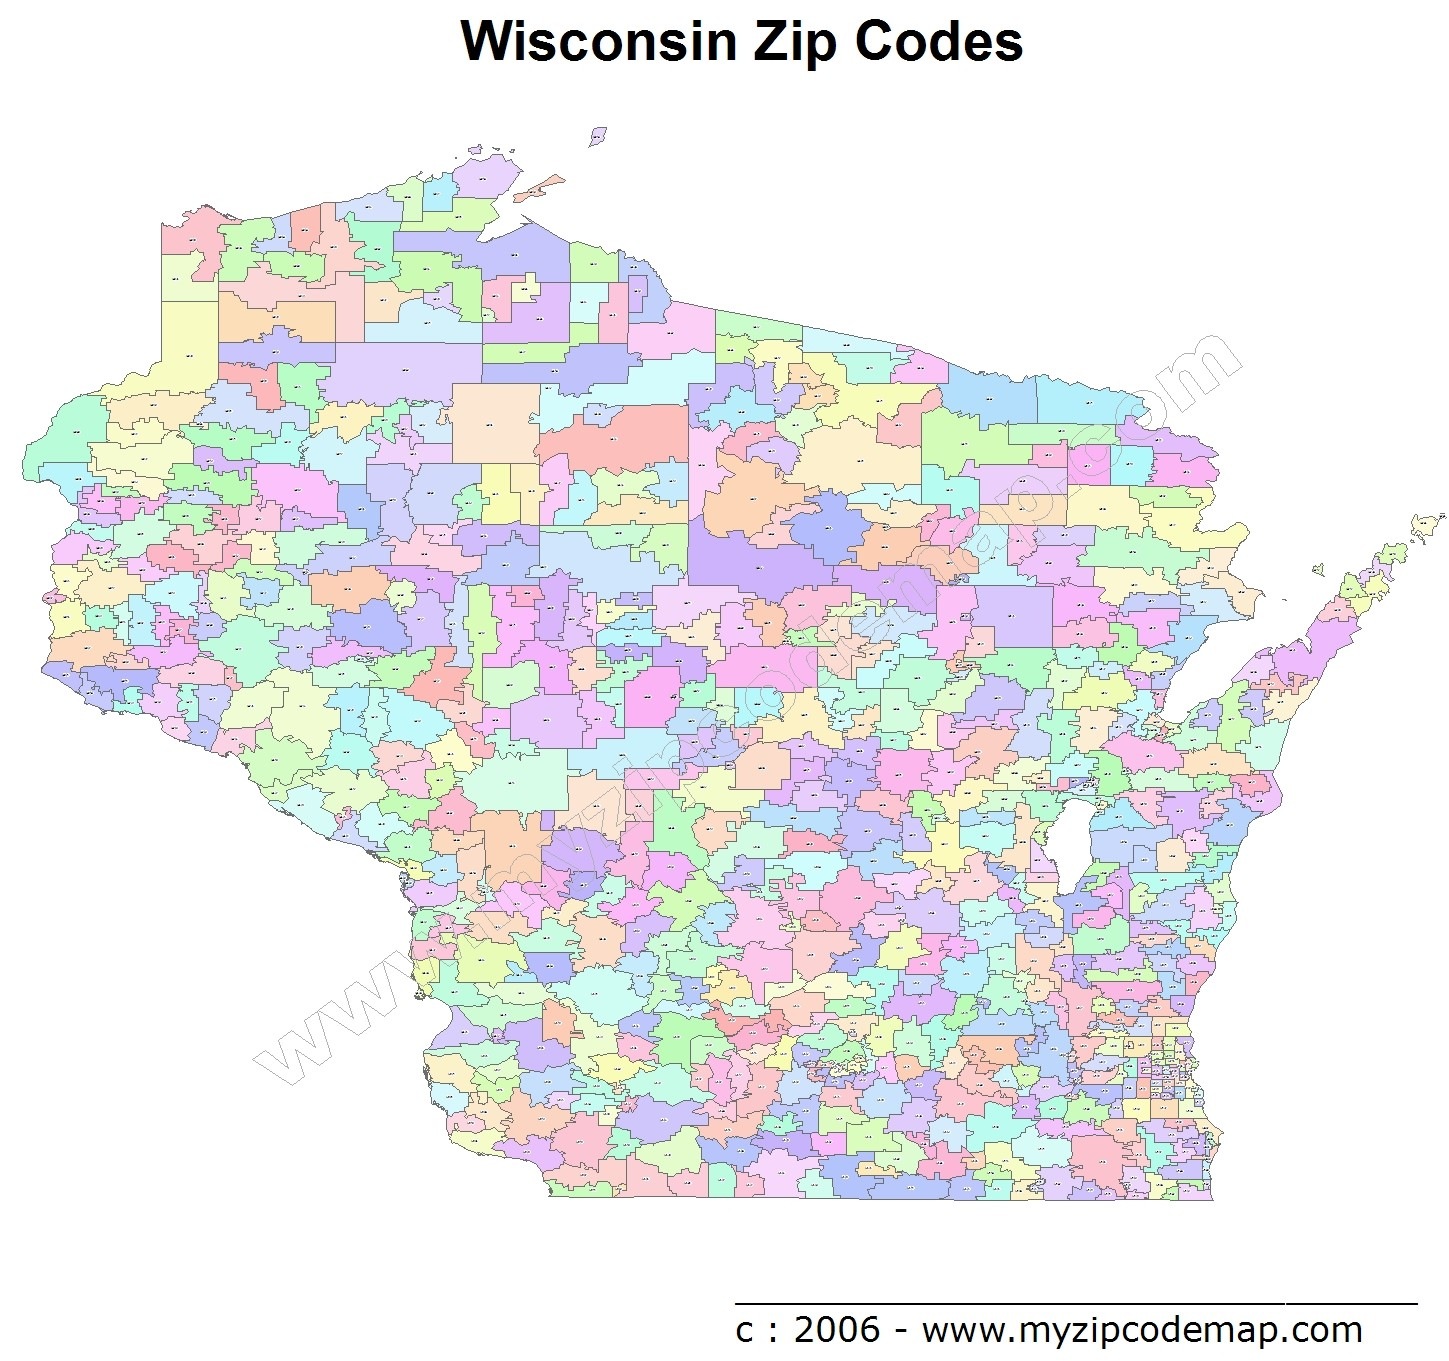 Wisconsin (WI) Zip Code Map